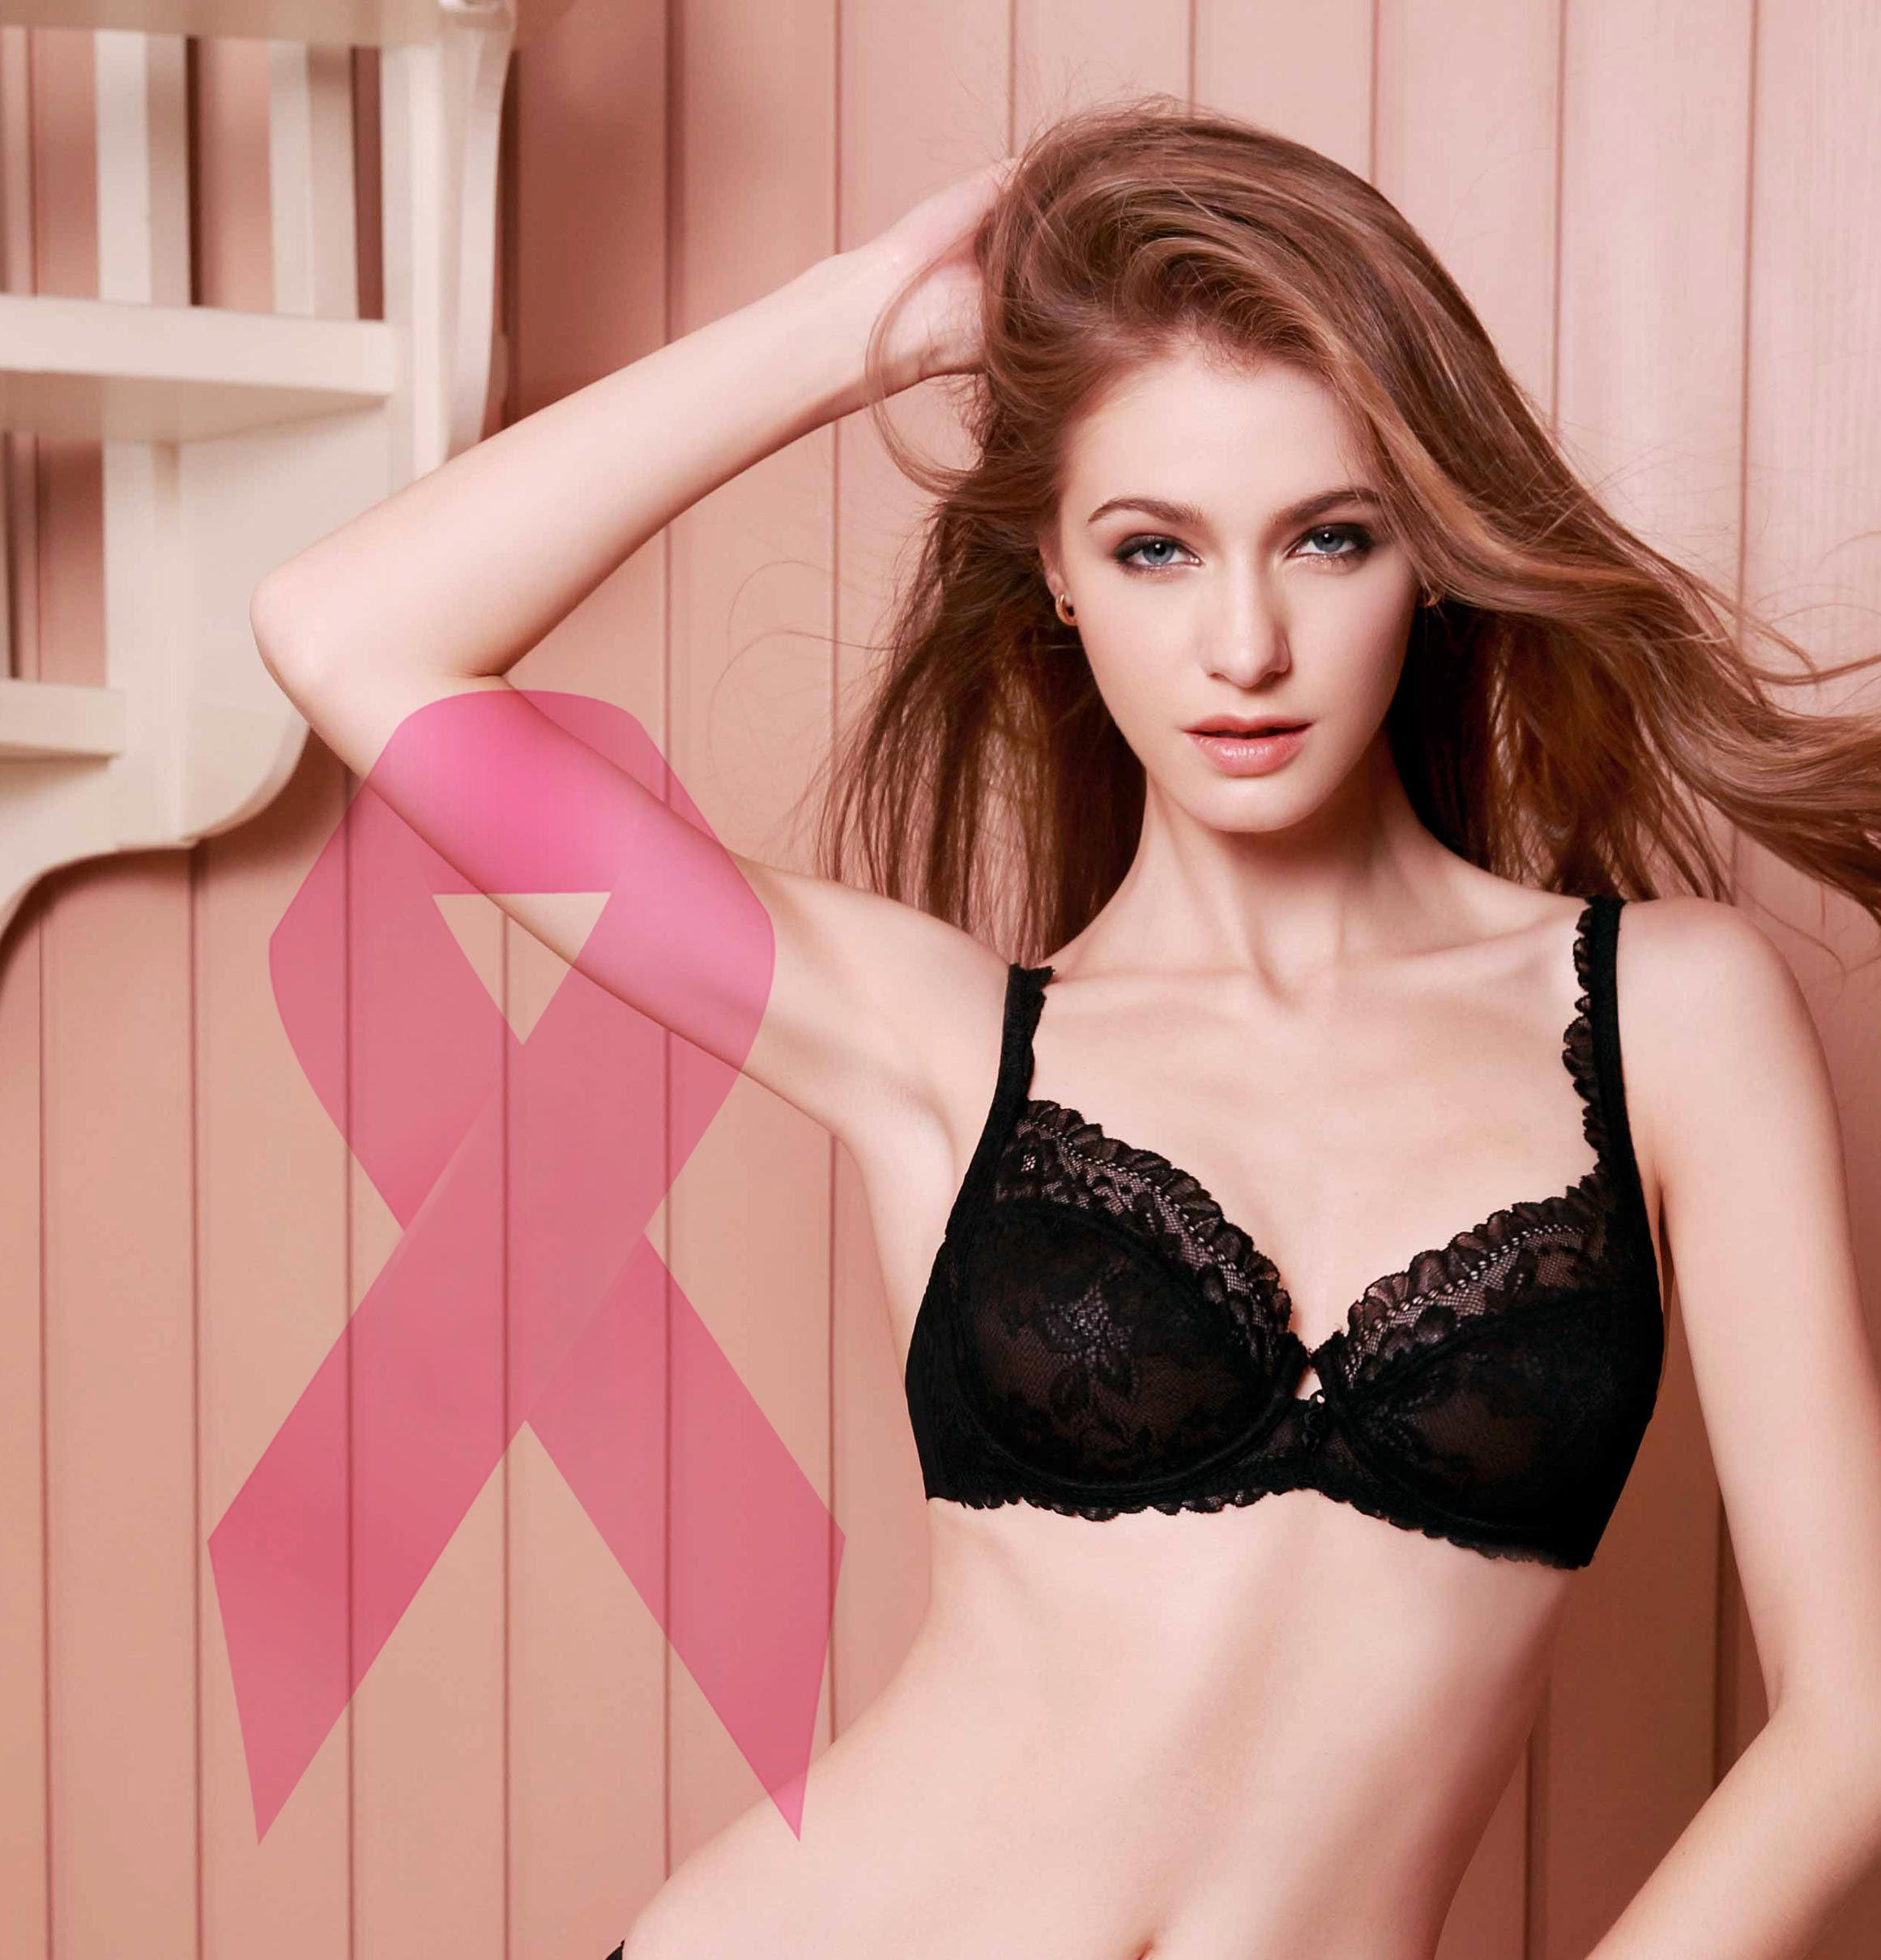 From $29.90 + Free Shipping Breast Cancer Awareness Month Sale @ Amazon